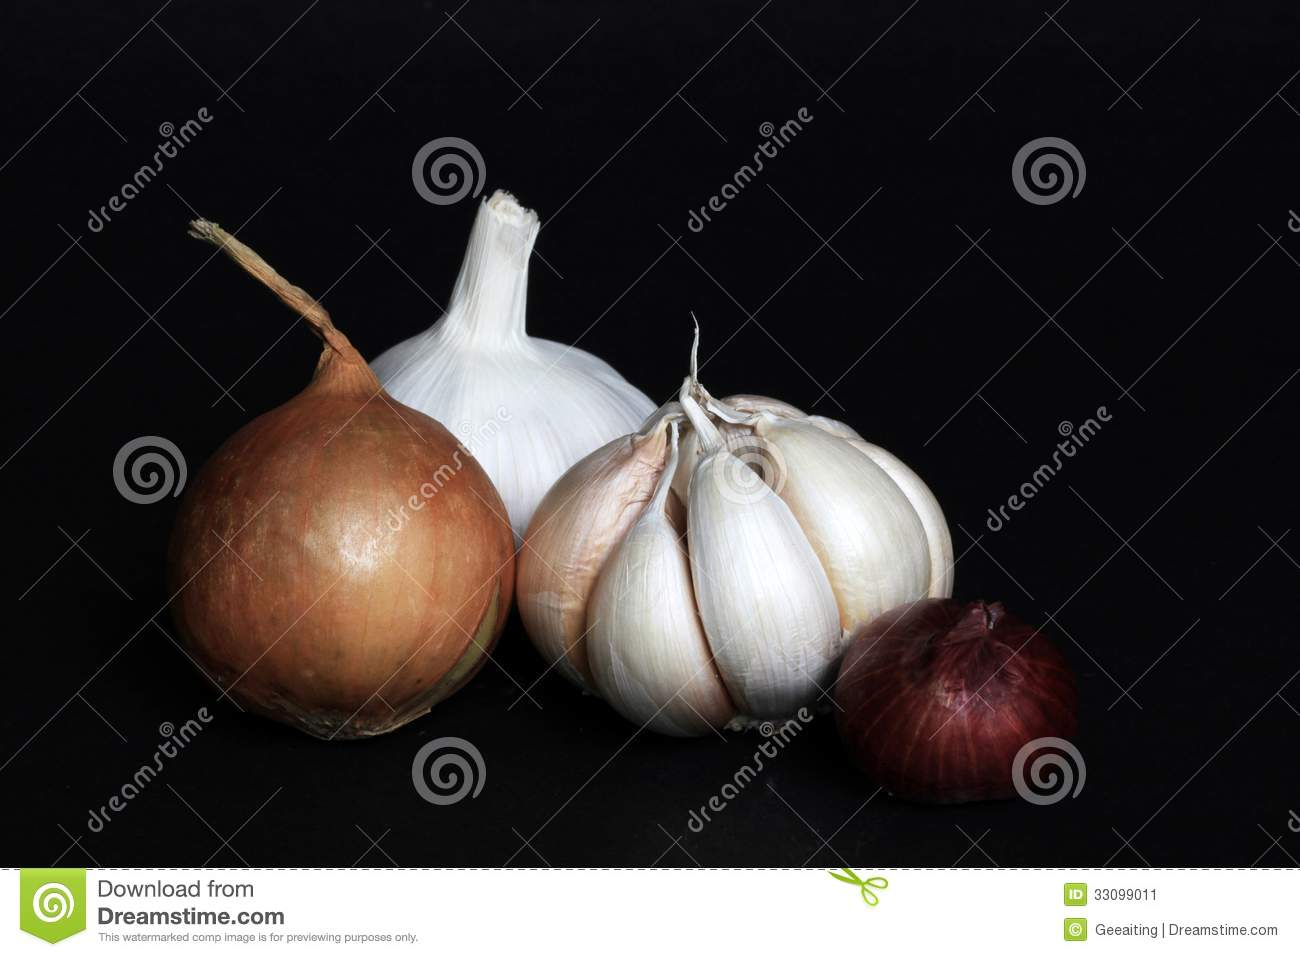 Garlic, onion and red onion can be found in the kitchen where there